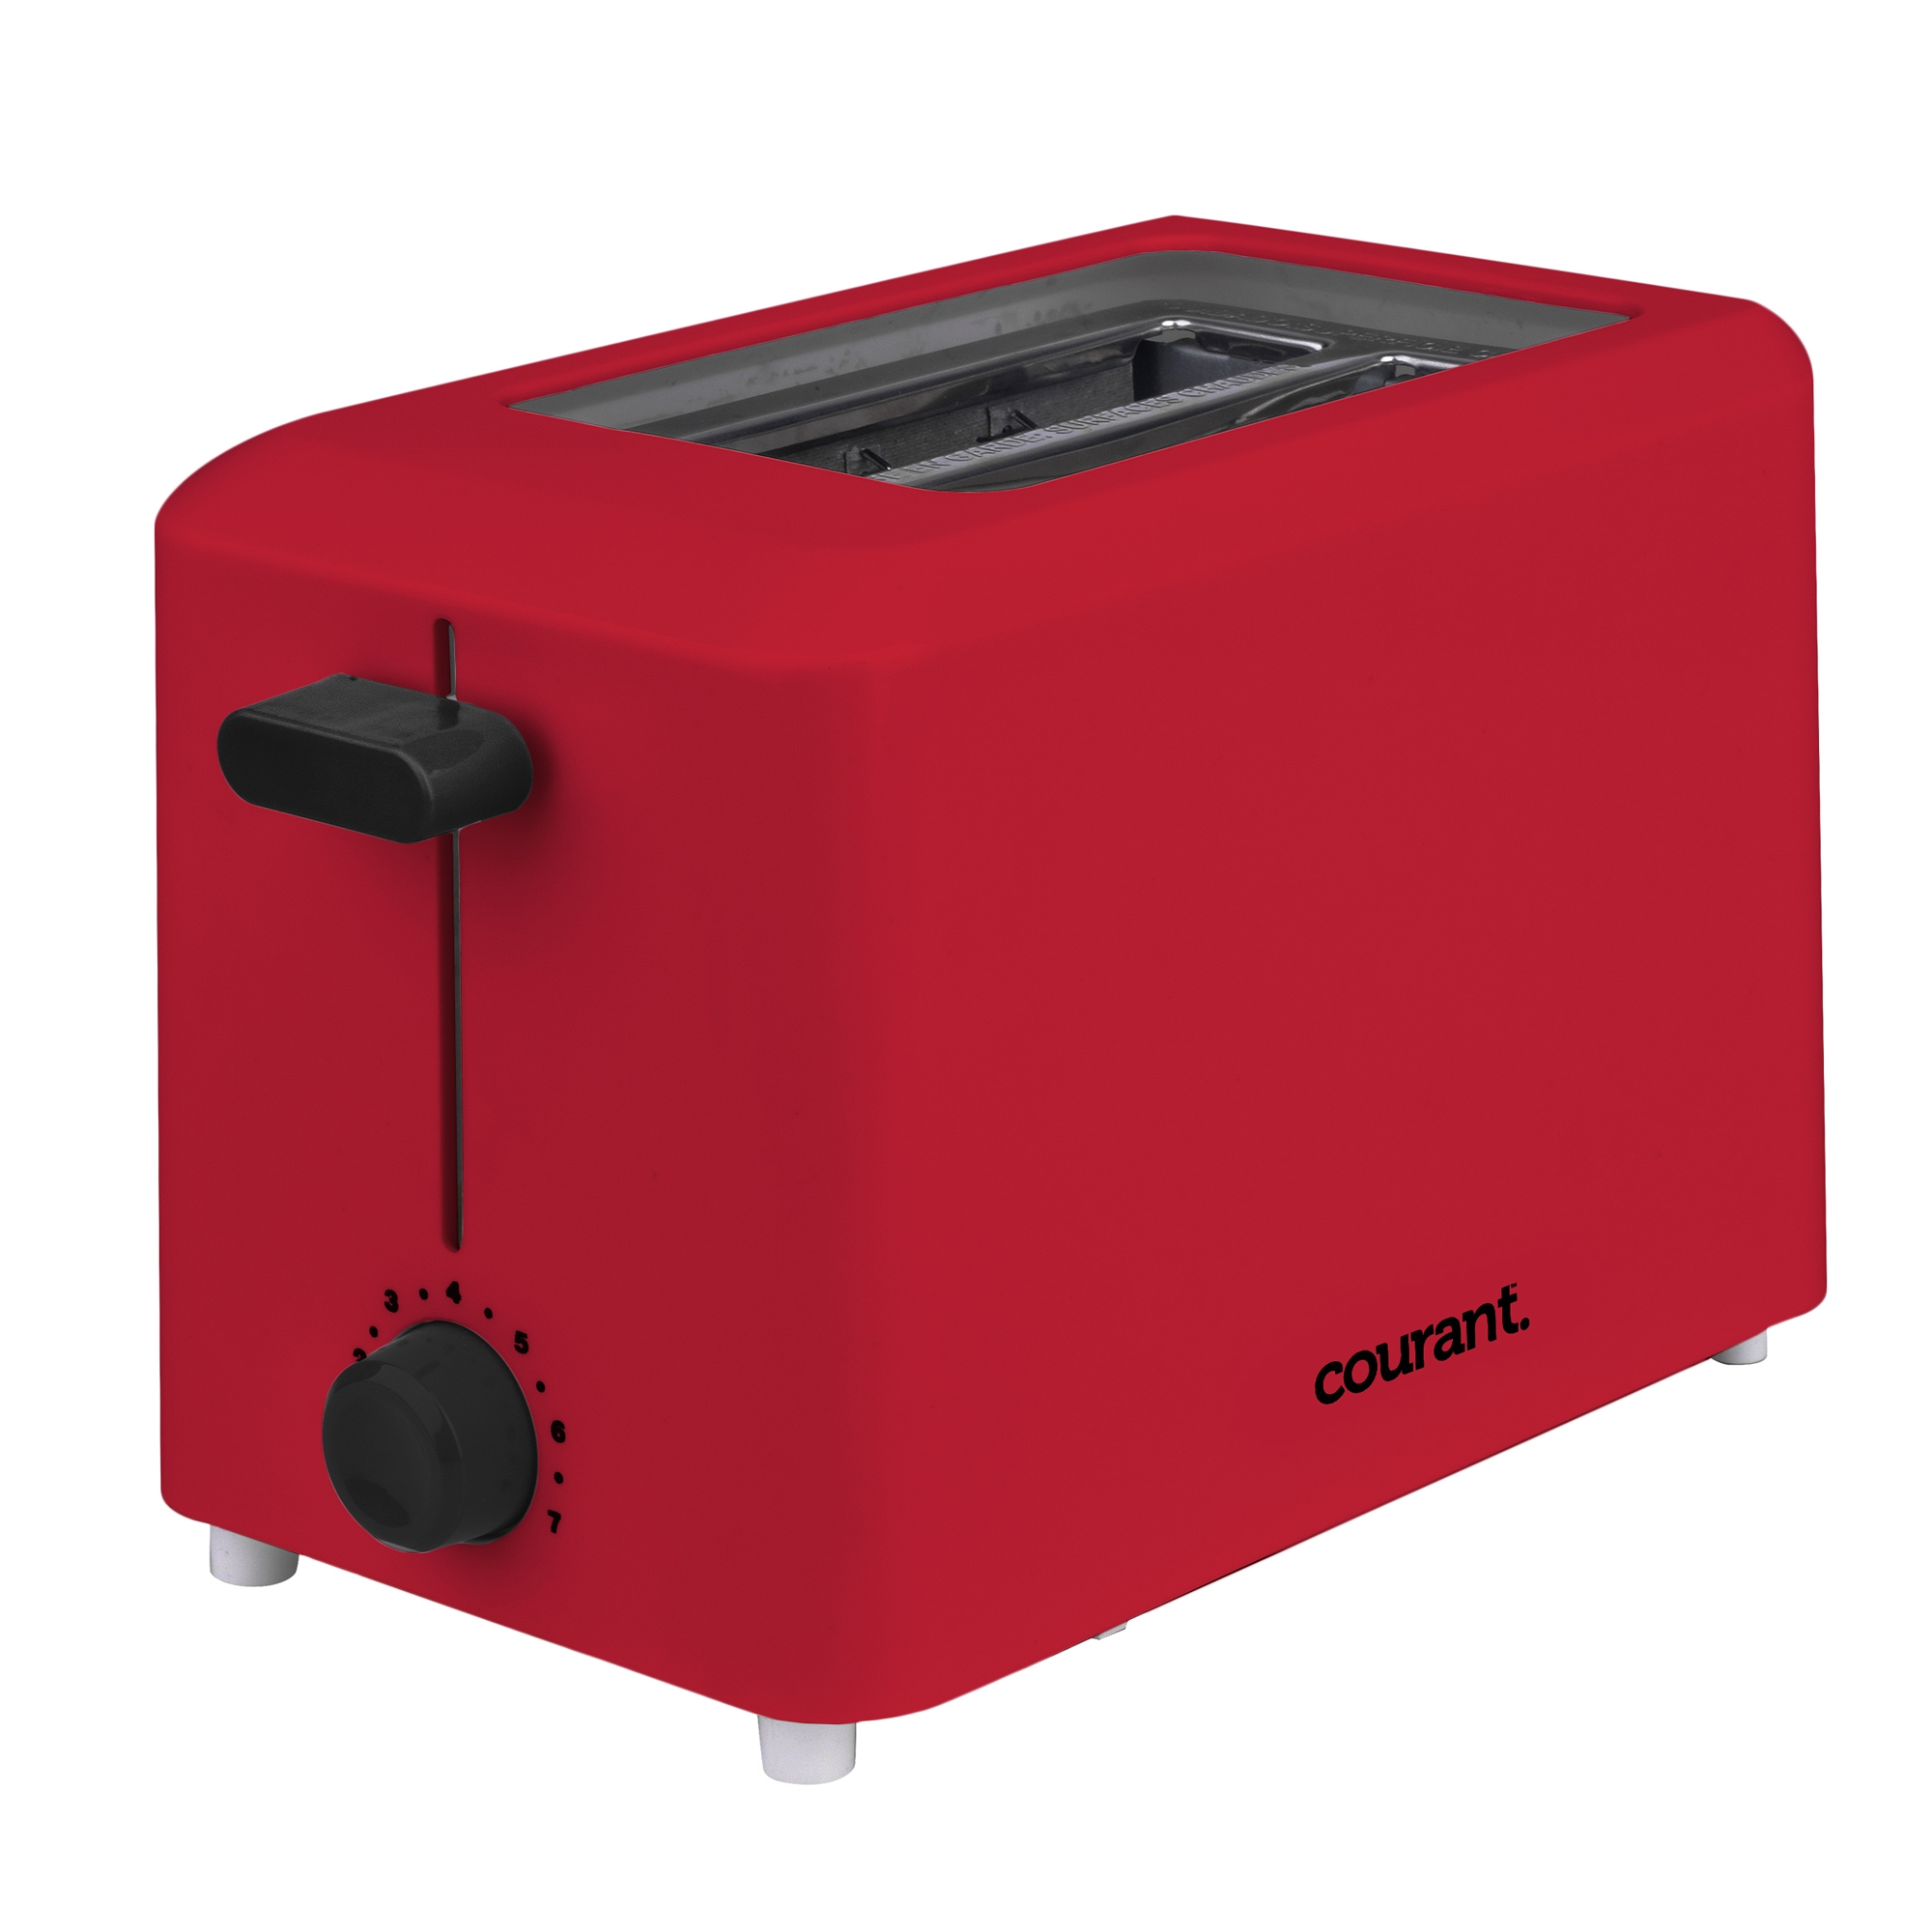 Courant Cool Touch 2-Slice 750-Watts Toaster, Red